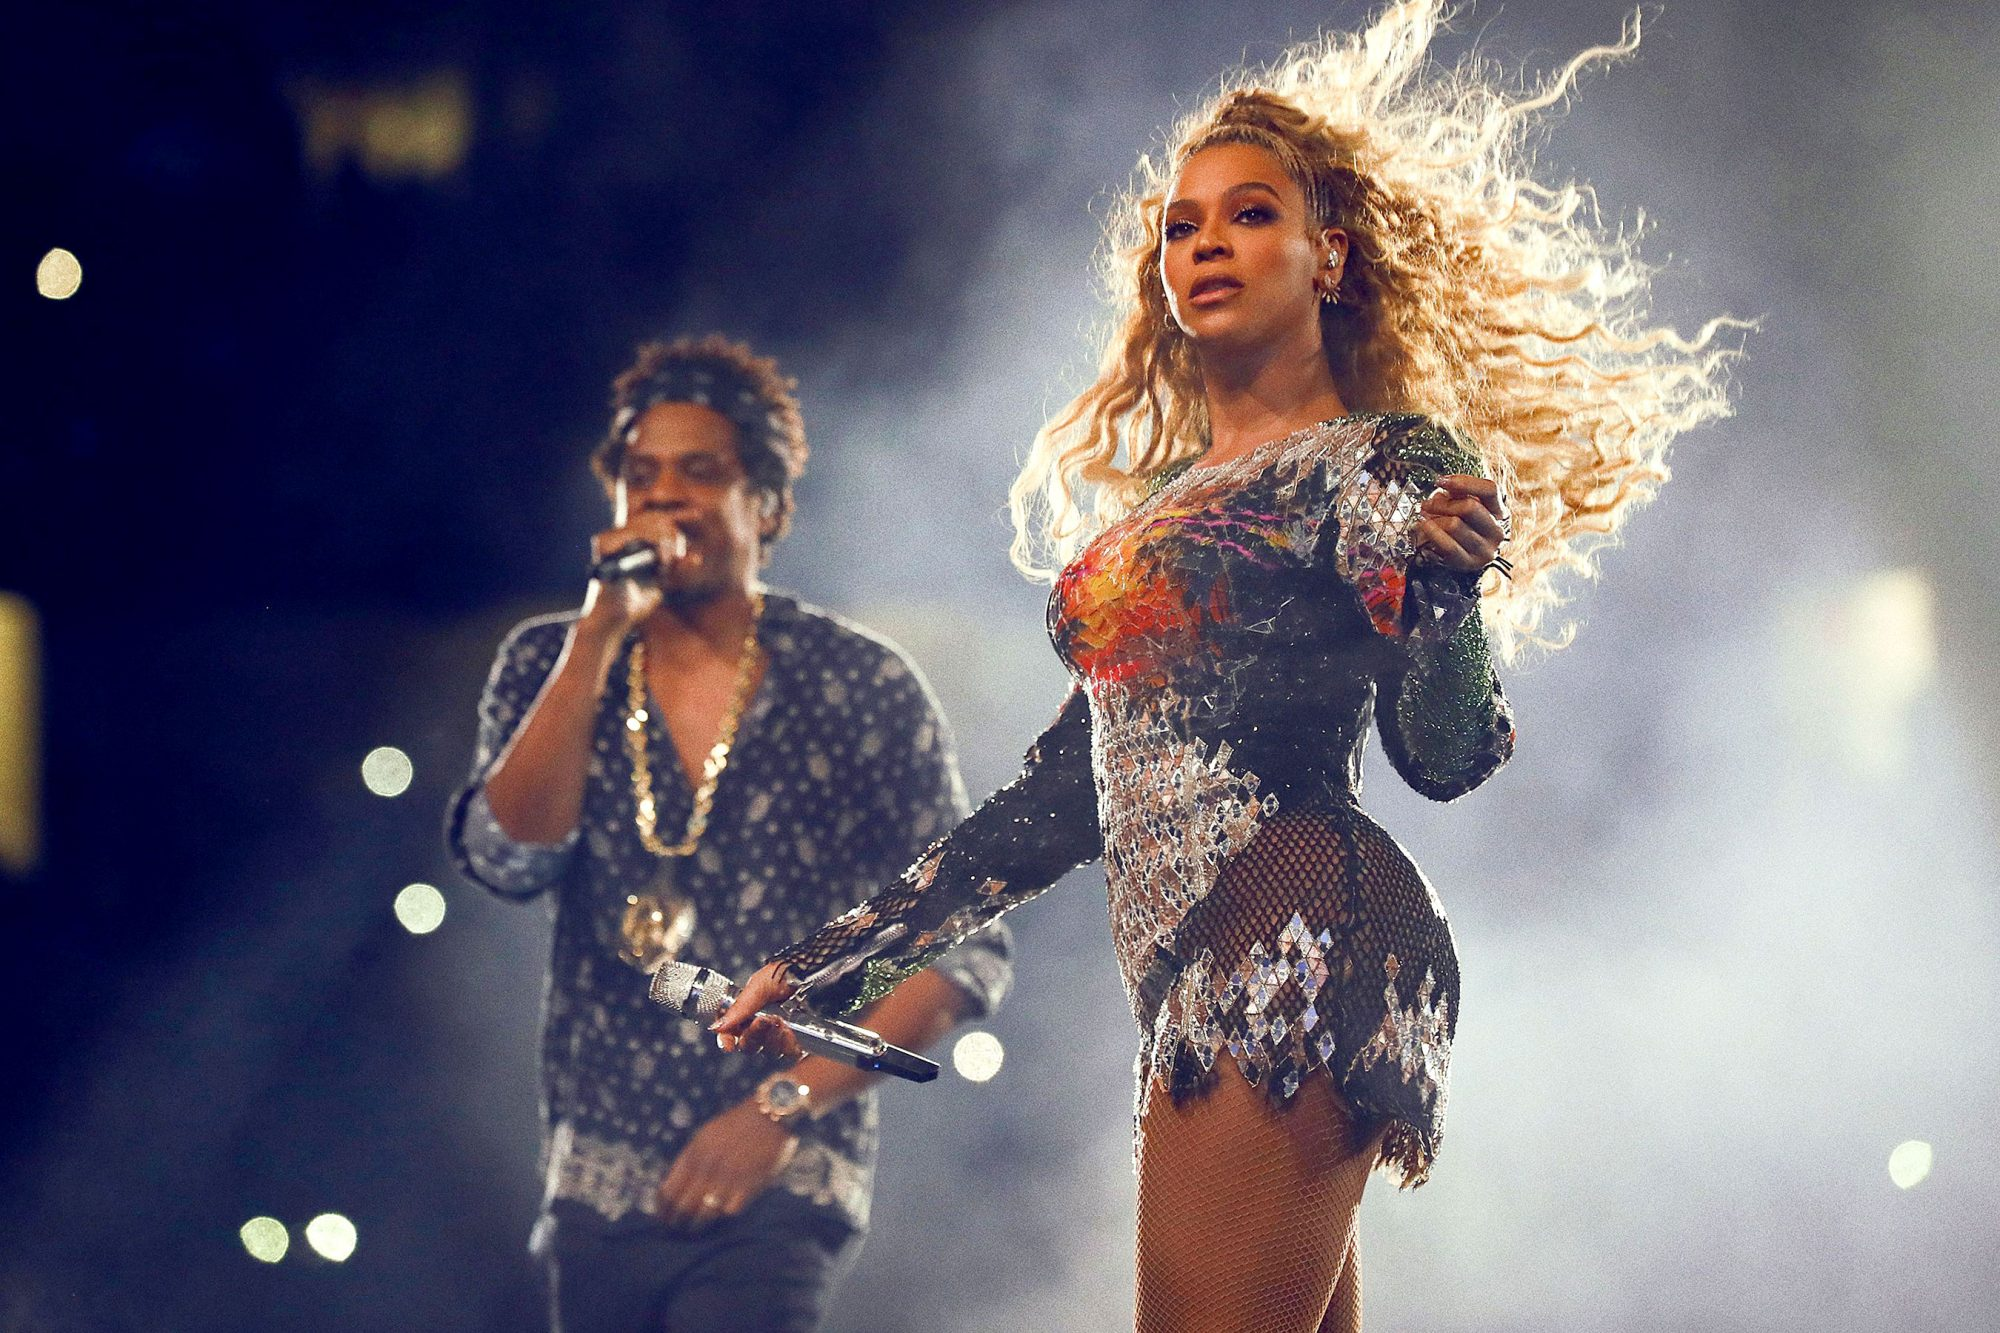 Beyonce and Jay-Z in concert, 'On The Run II Tour', Detroit, USA - 13 Aug 2018